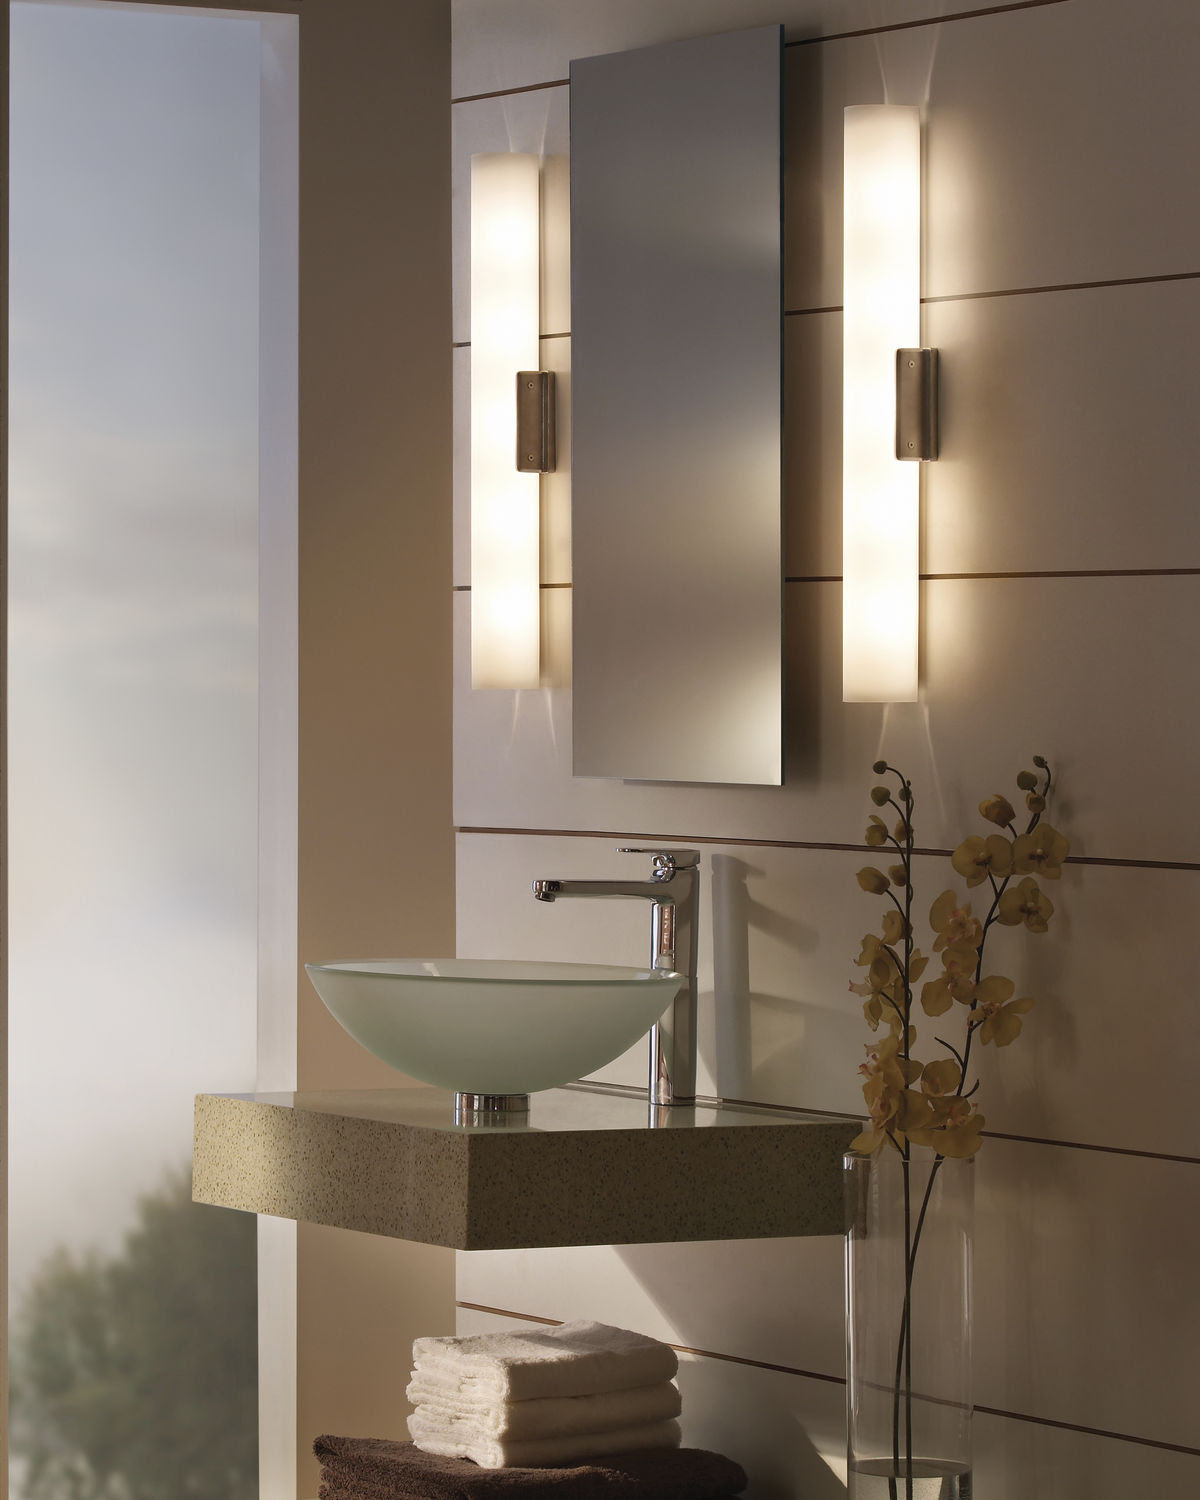 Contemporary wall light for bathroom mirrors - SOLACE - TECH LIGHTING